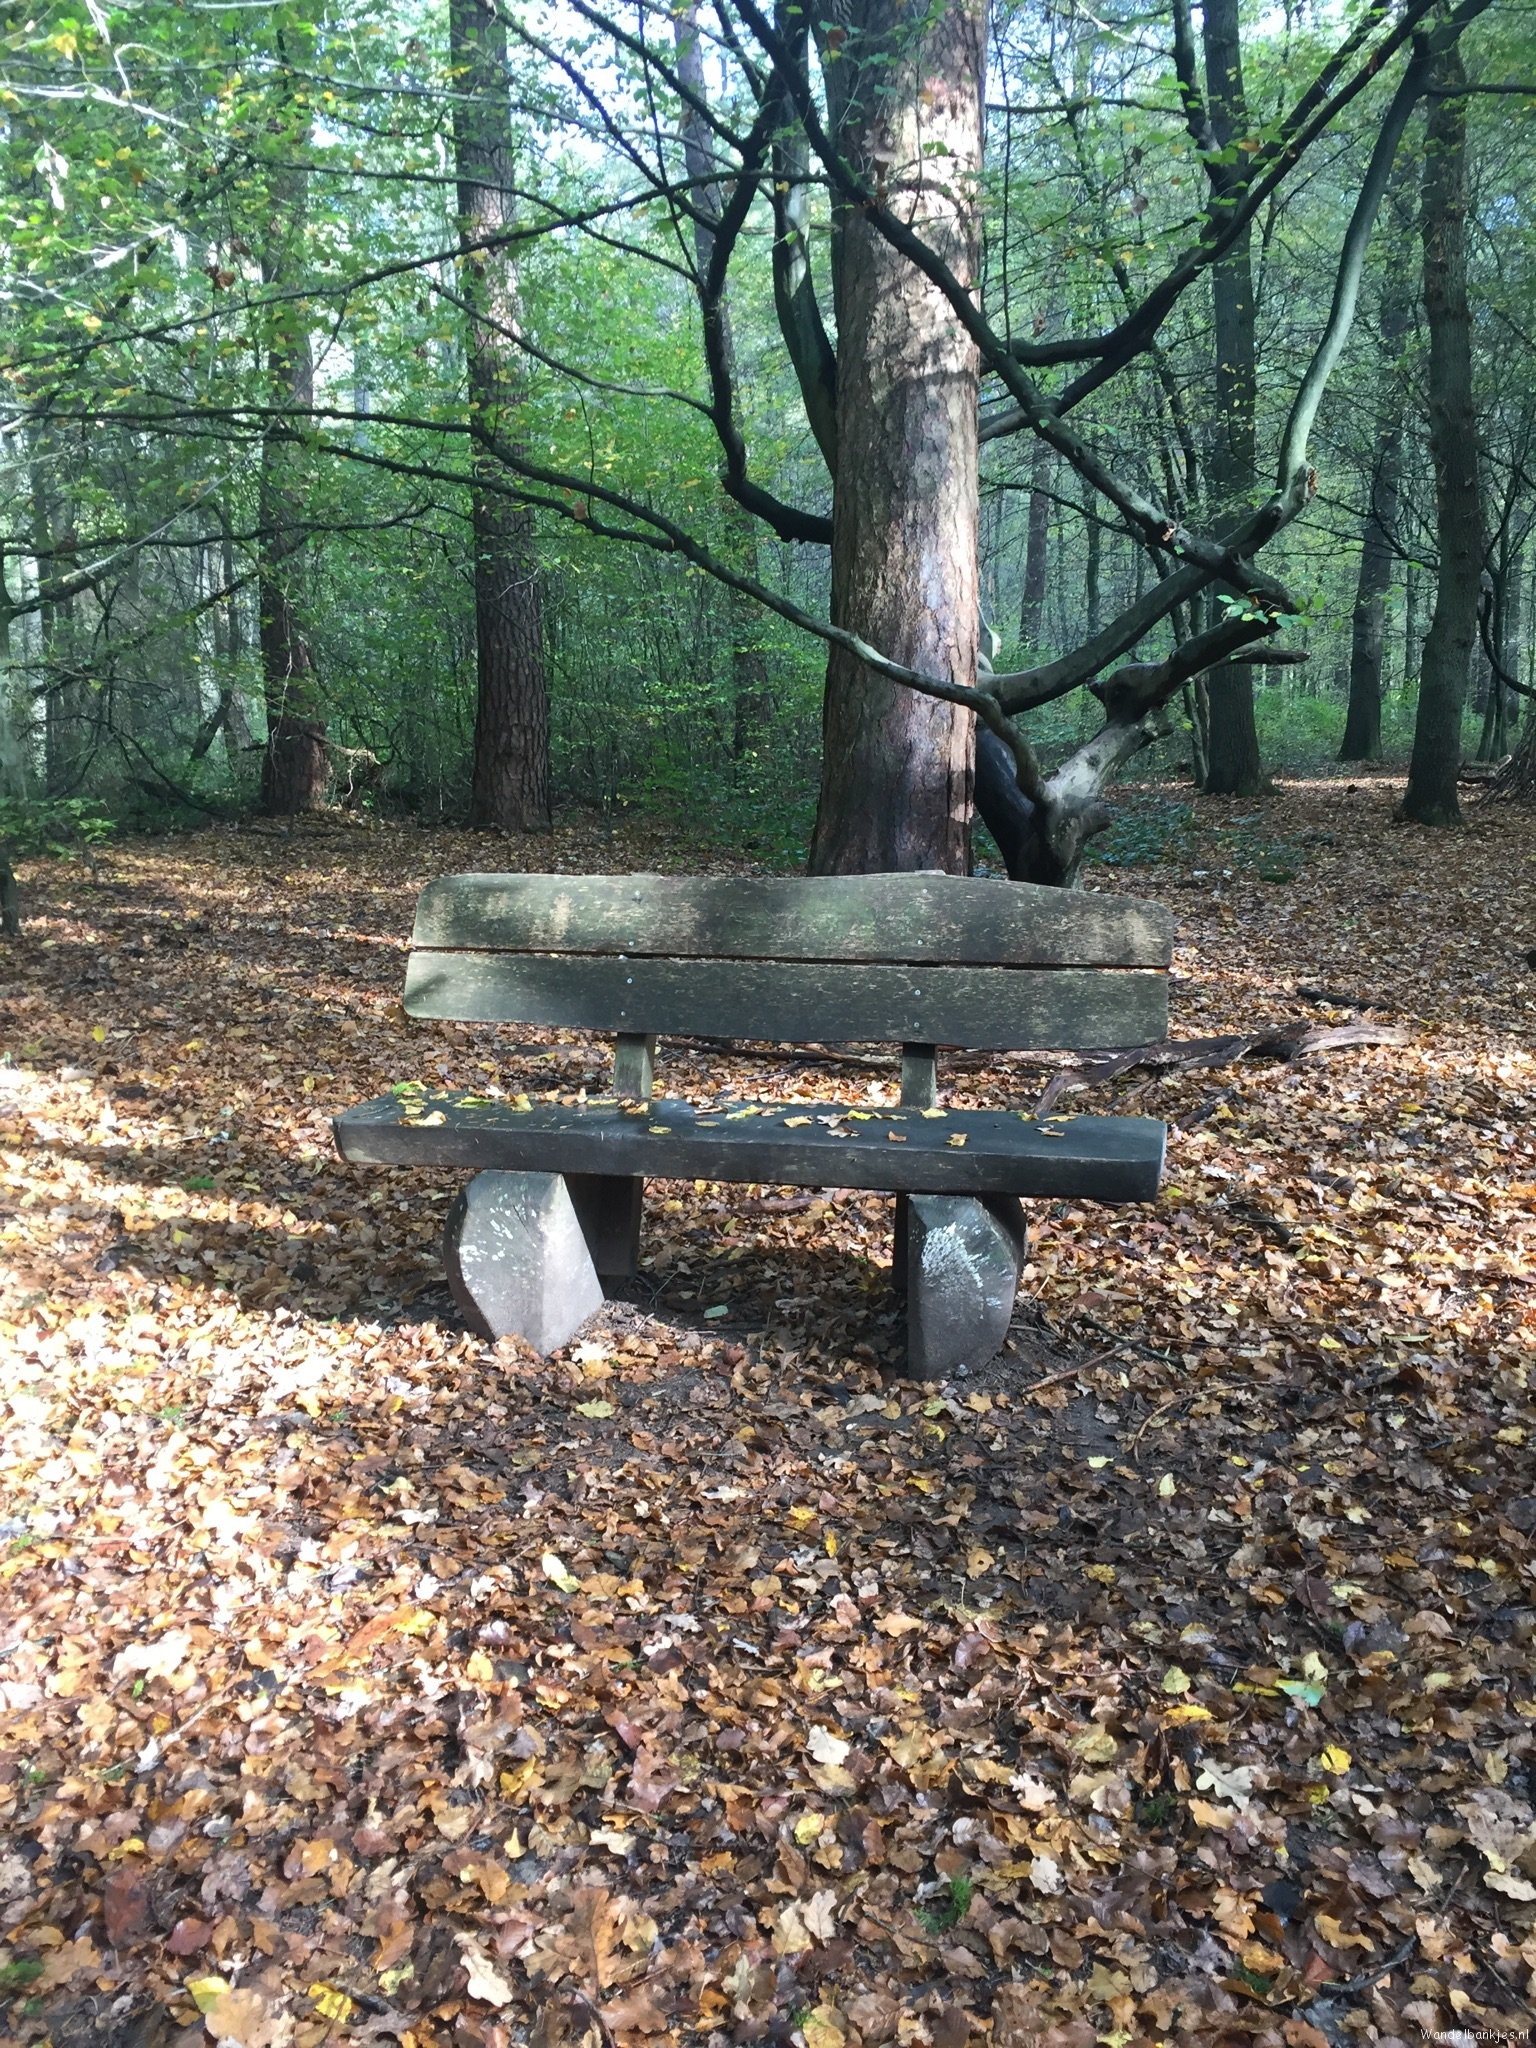 rt-mhaantas-walking benches-very-many-german-walking benches-in-the-konigsforst-autumn-httpst-coubcletqpzq